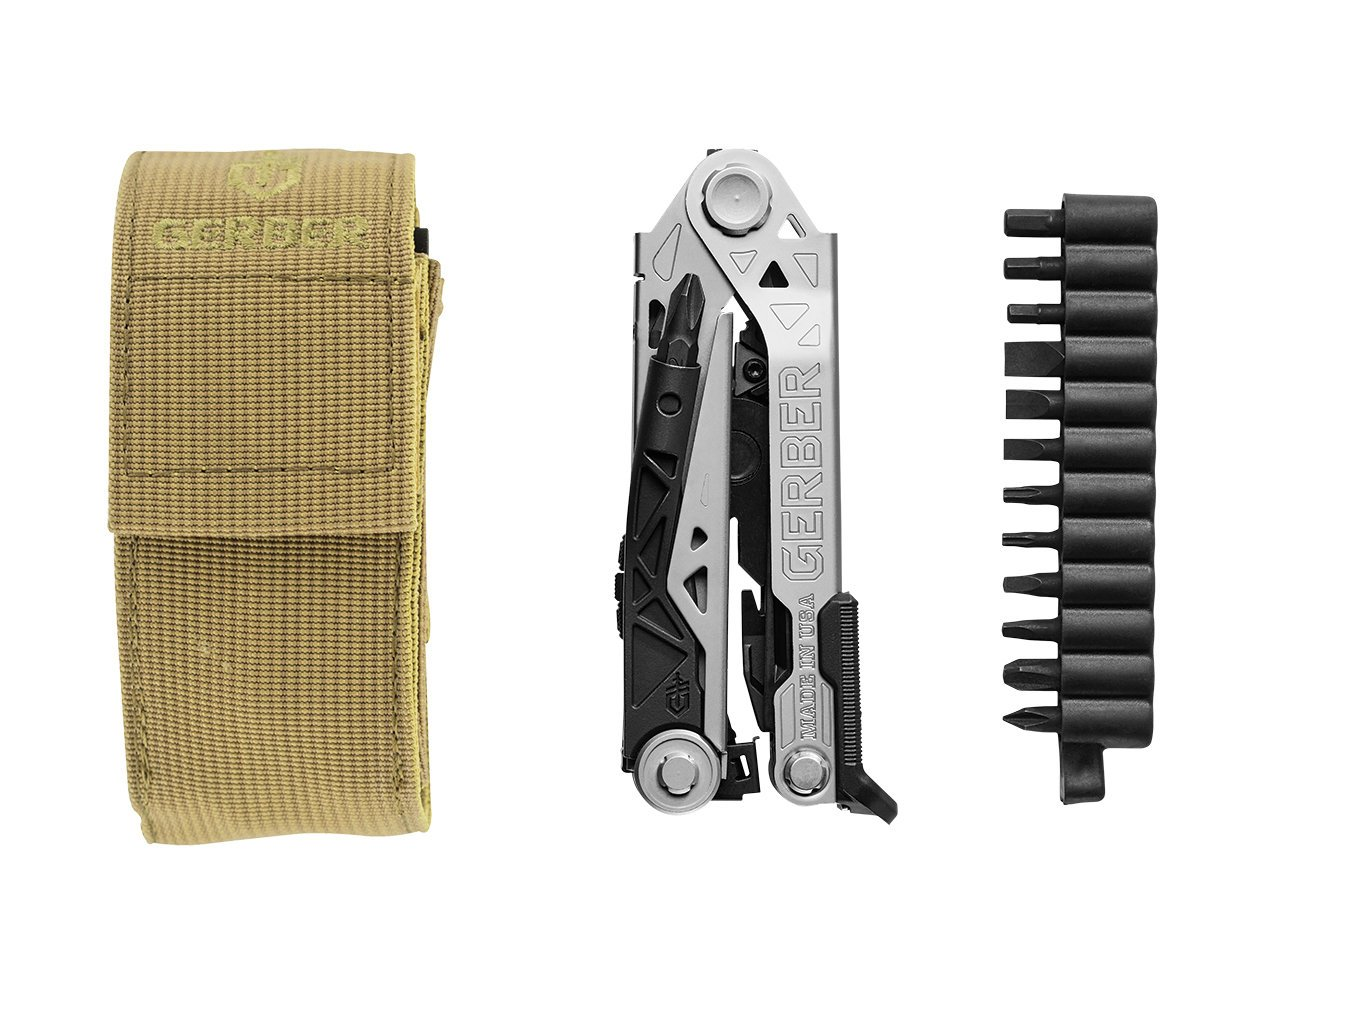 Gerber Center-Drive Multi-Tool | Bit Set, Coyote Brown US-Made Sheath [30-001407] by Gerber (Image #1)